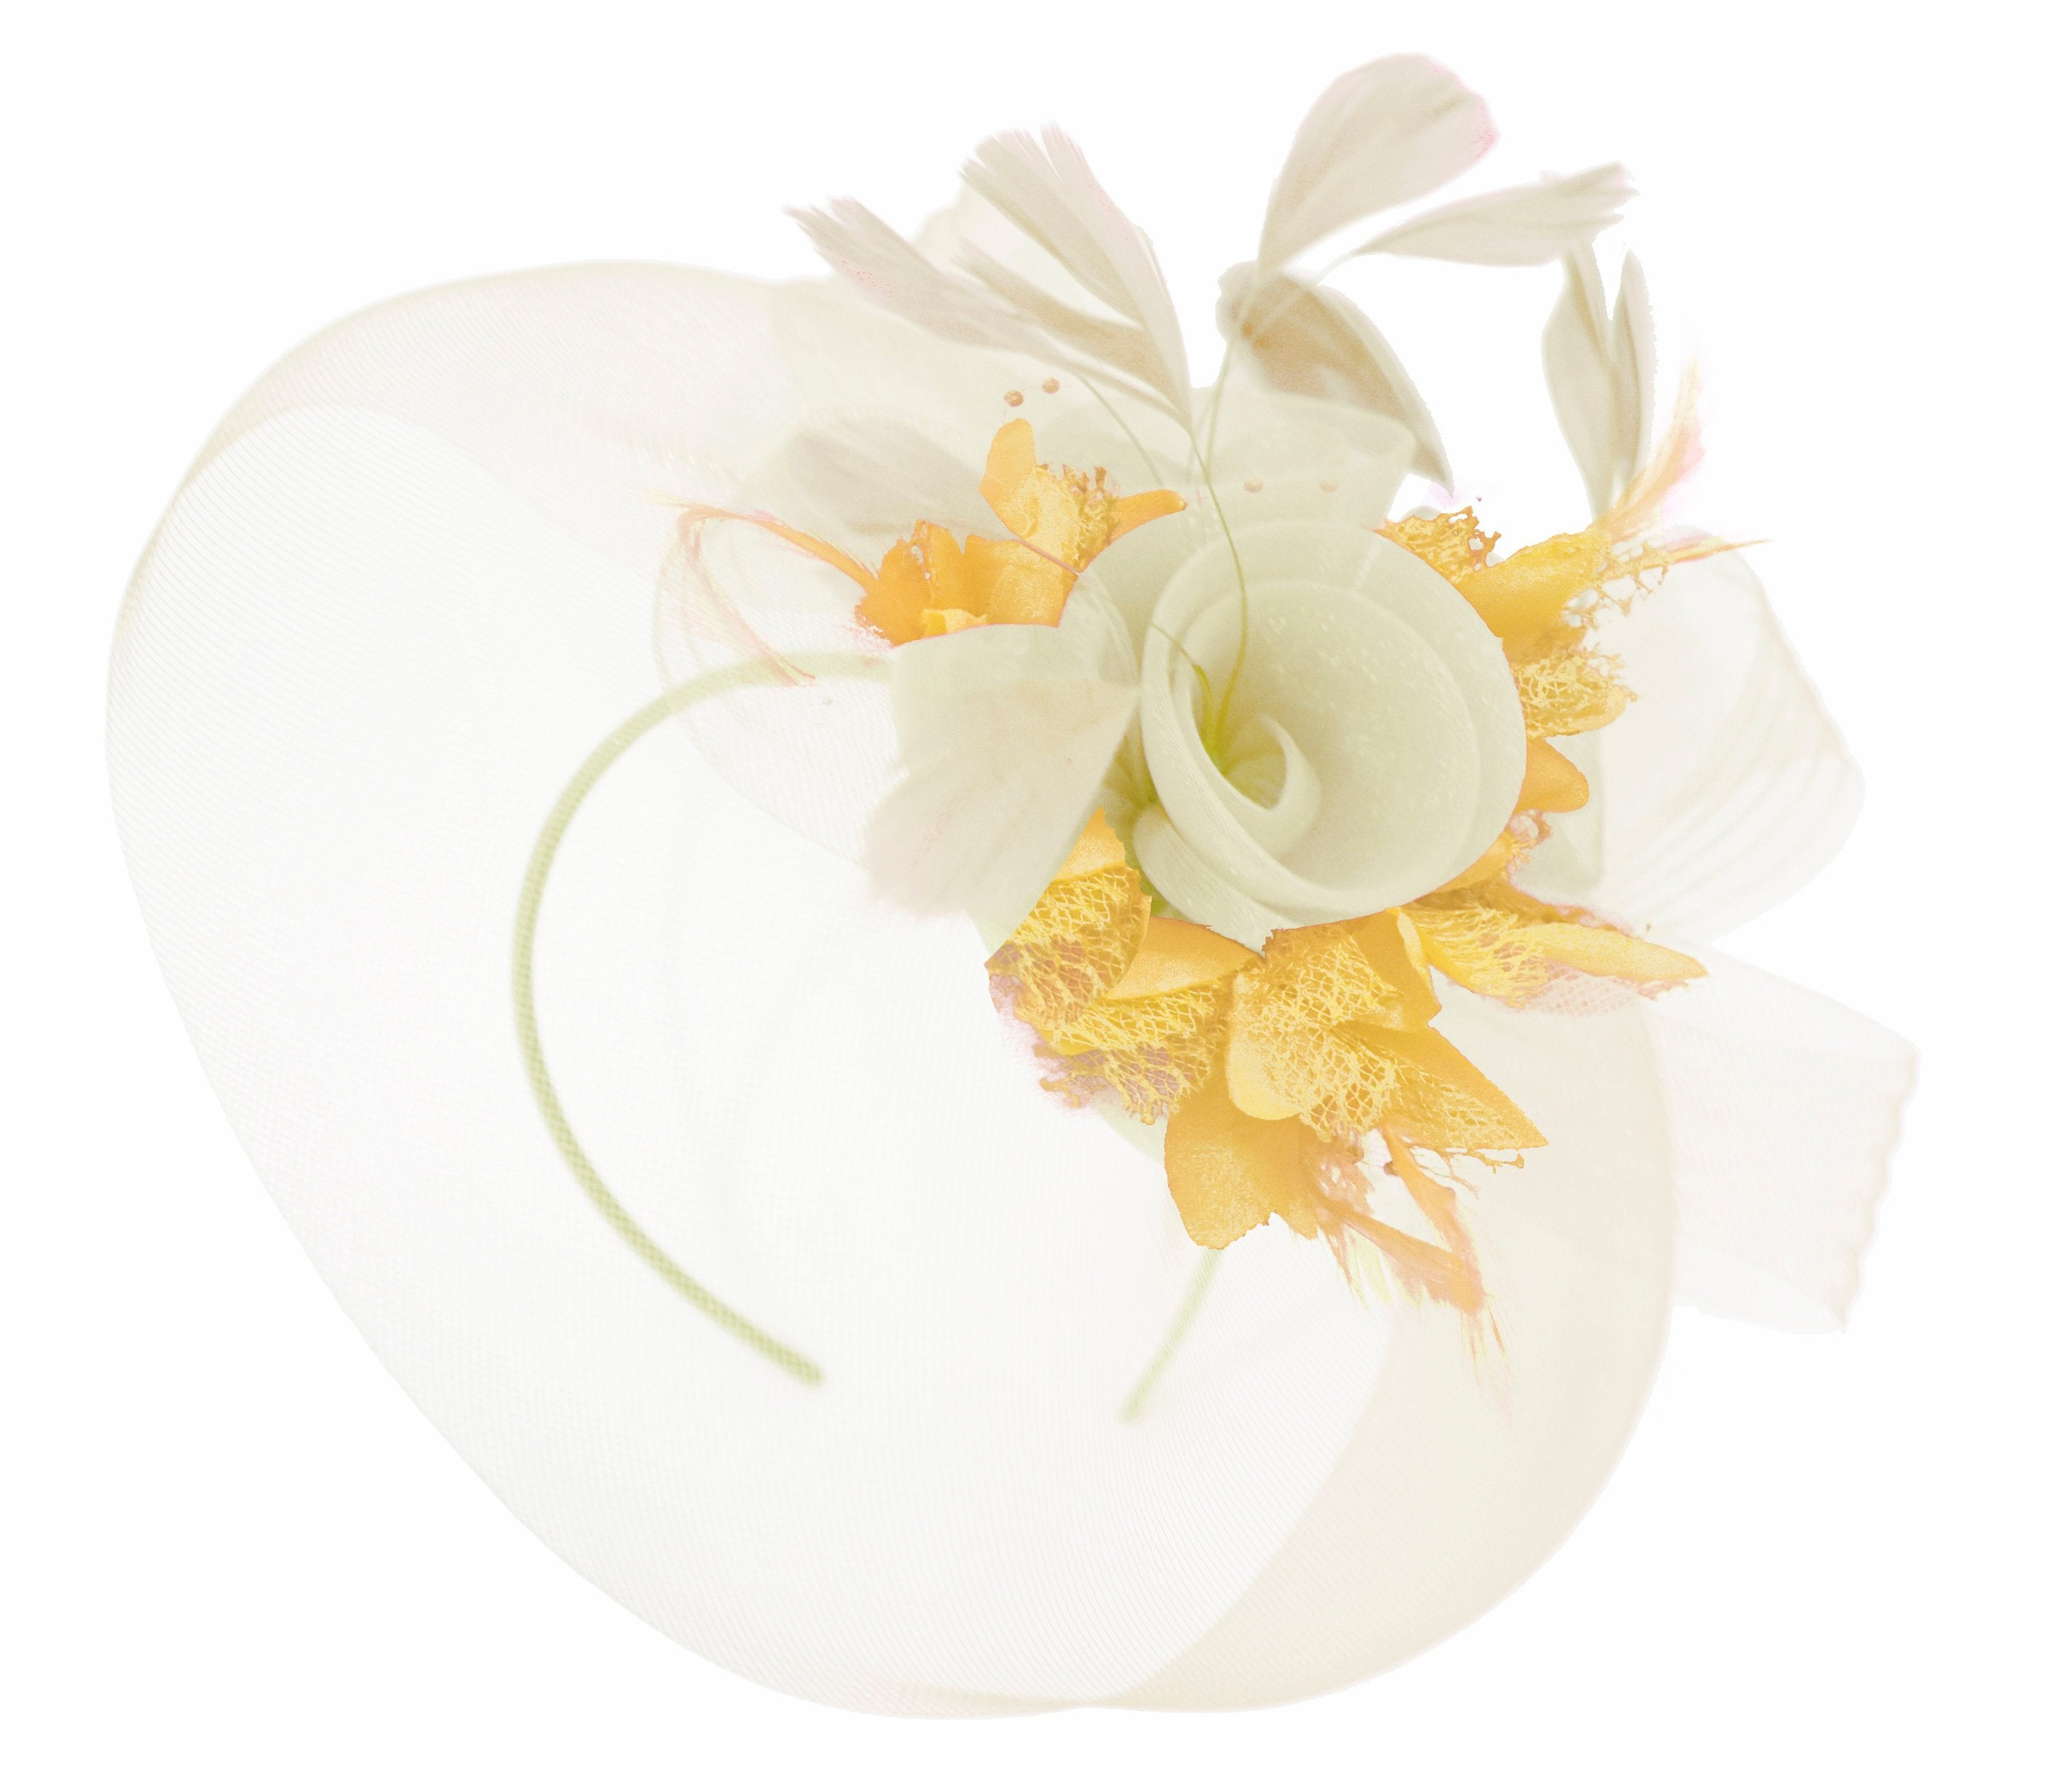 Caprilite Cream and Gold Fascinator on Headband Veil UK Wedding Ascot Races Hatinator Women